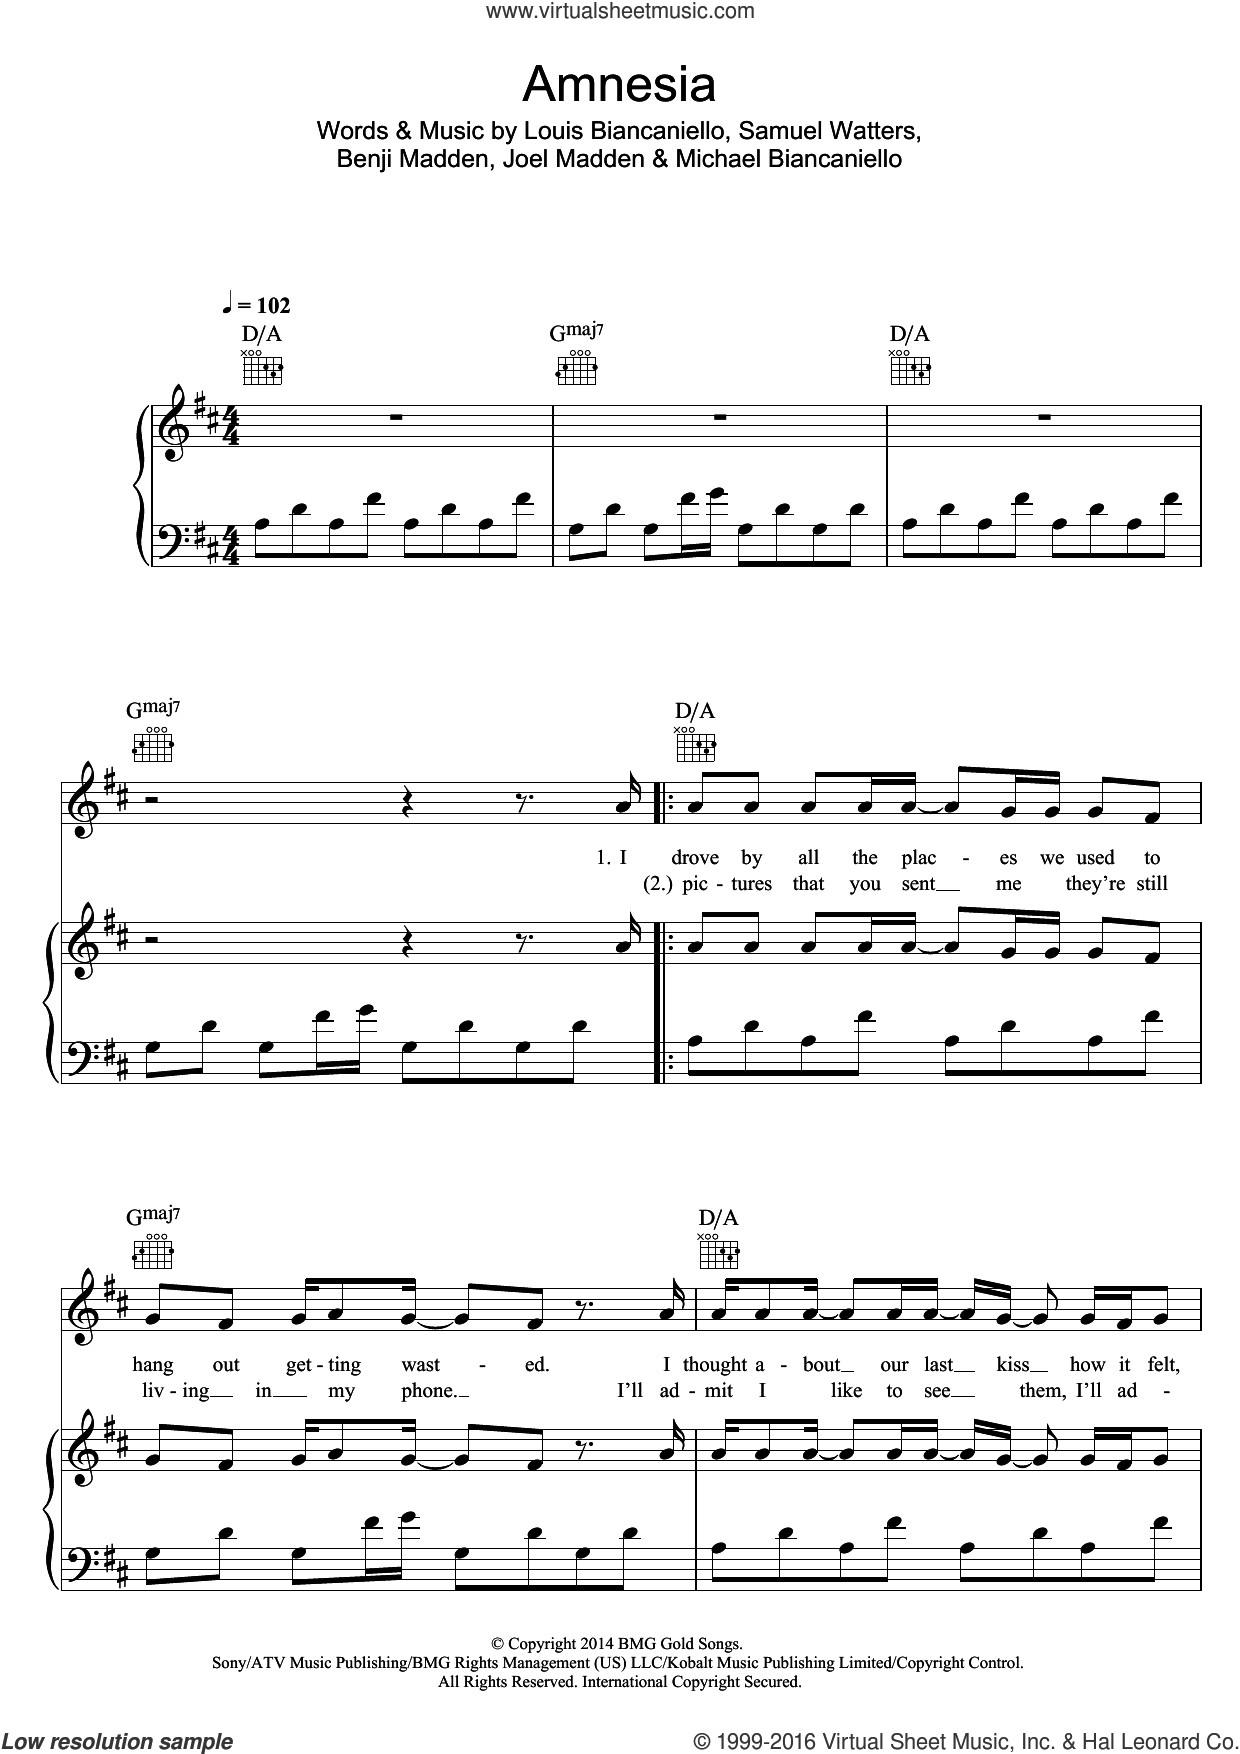 Amnesia sheet music for voice, piano or guitar by Benji Madden, Joel Madden, Louis Biancaniello and Sam Watters. Score Image Preview.